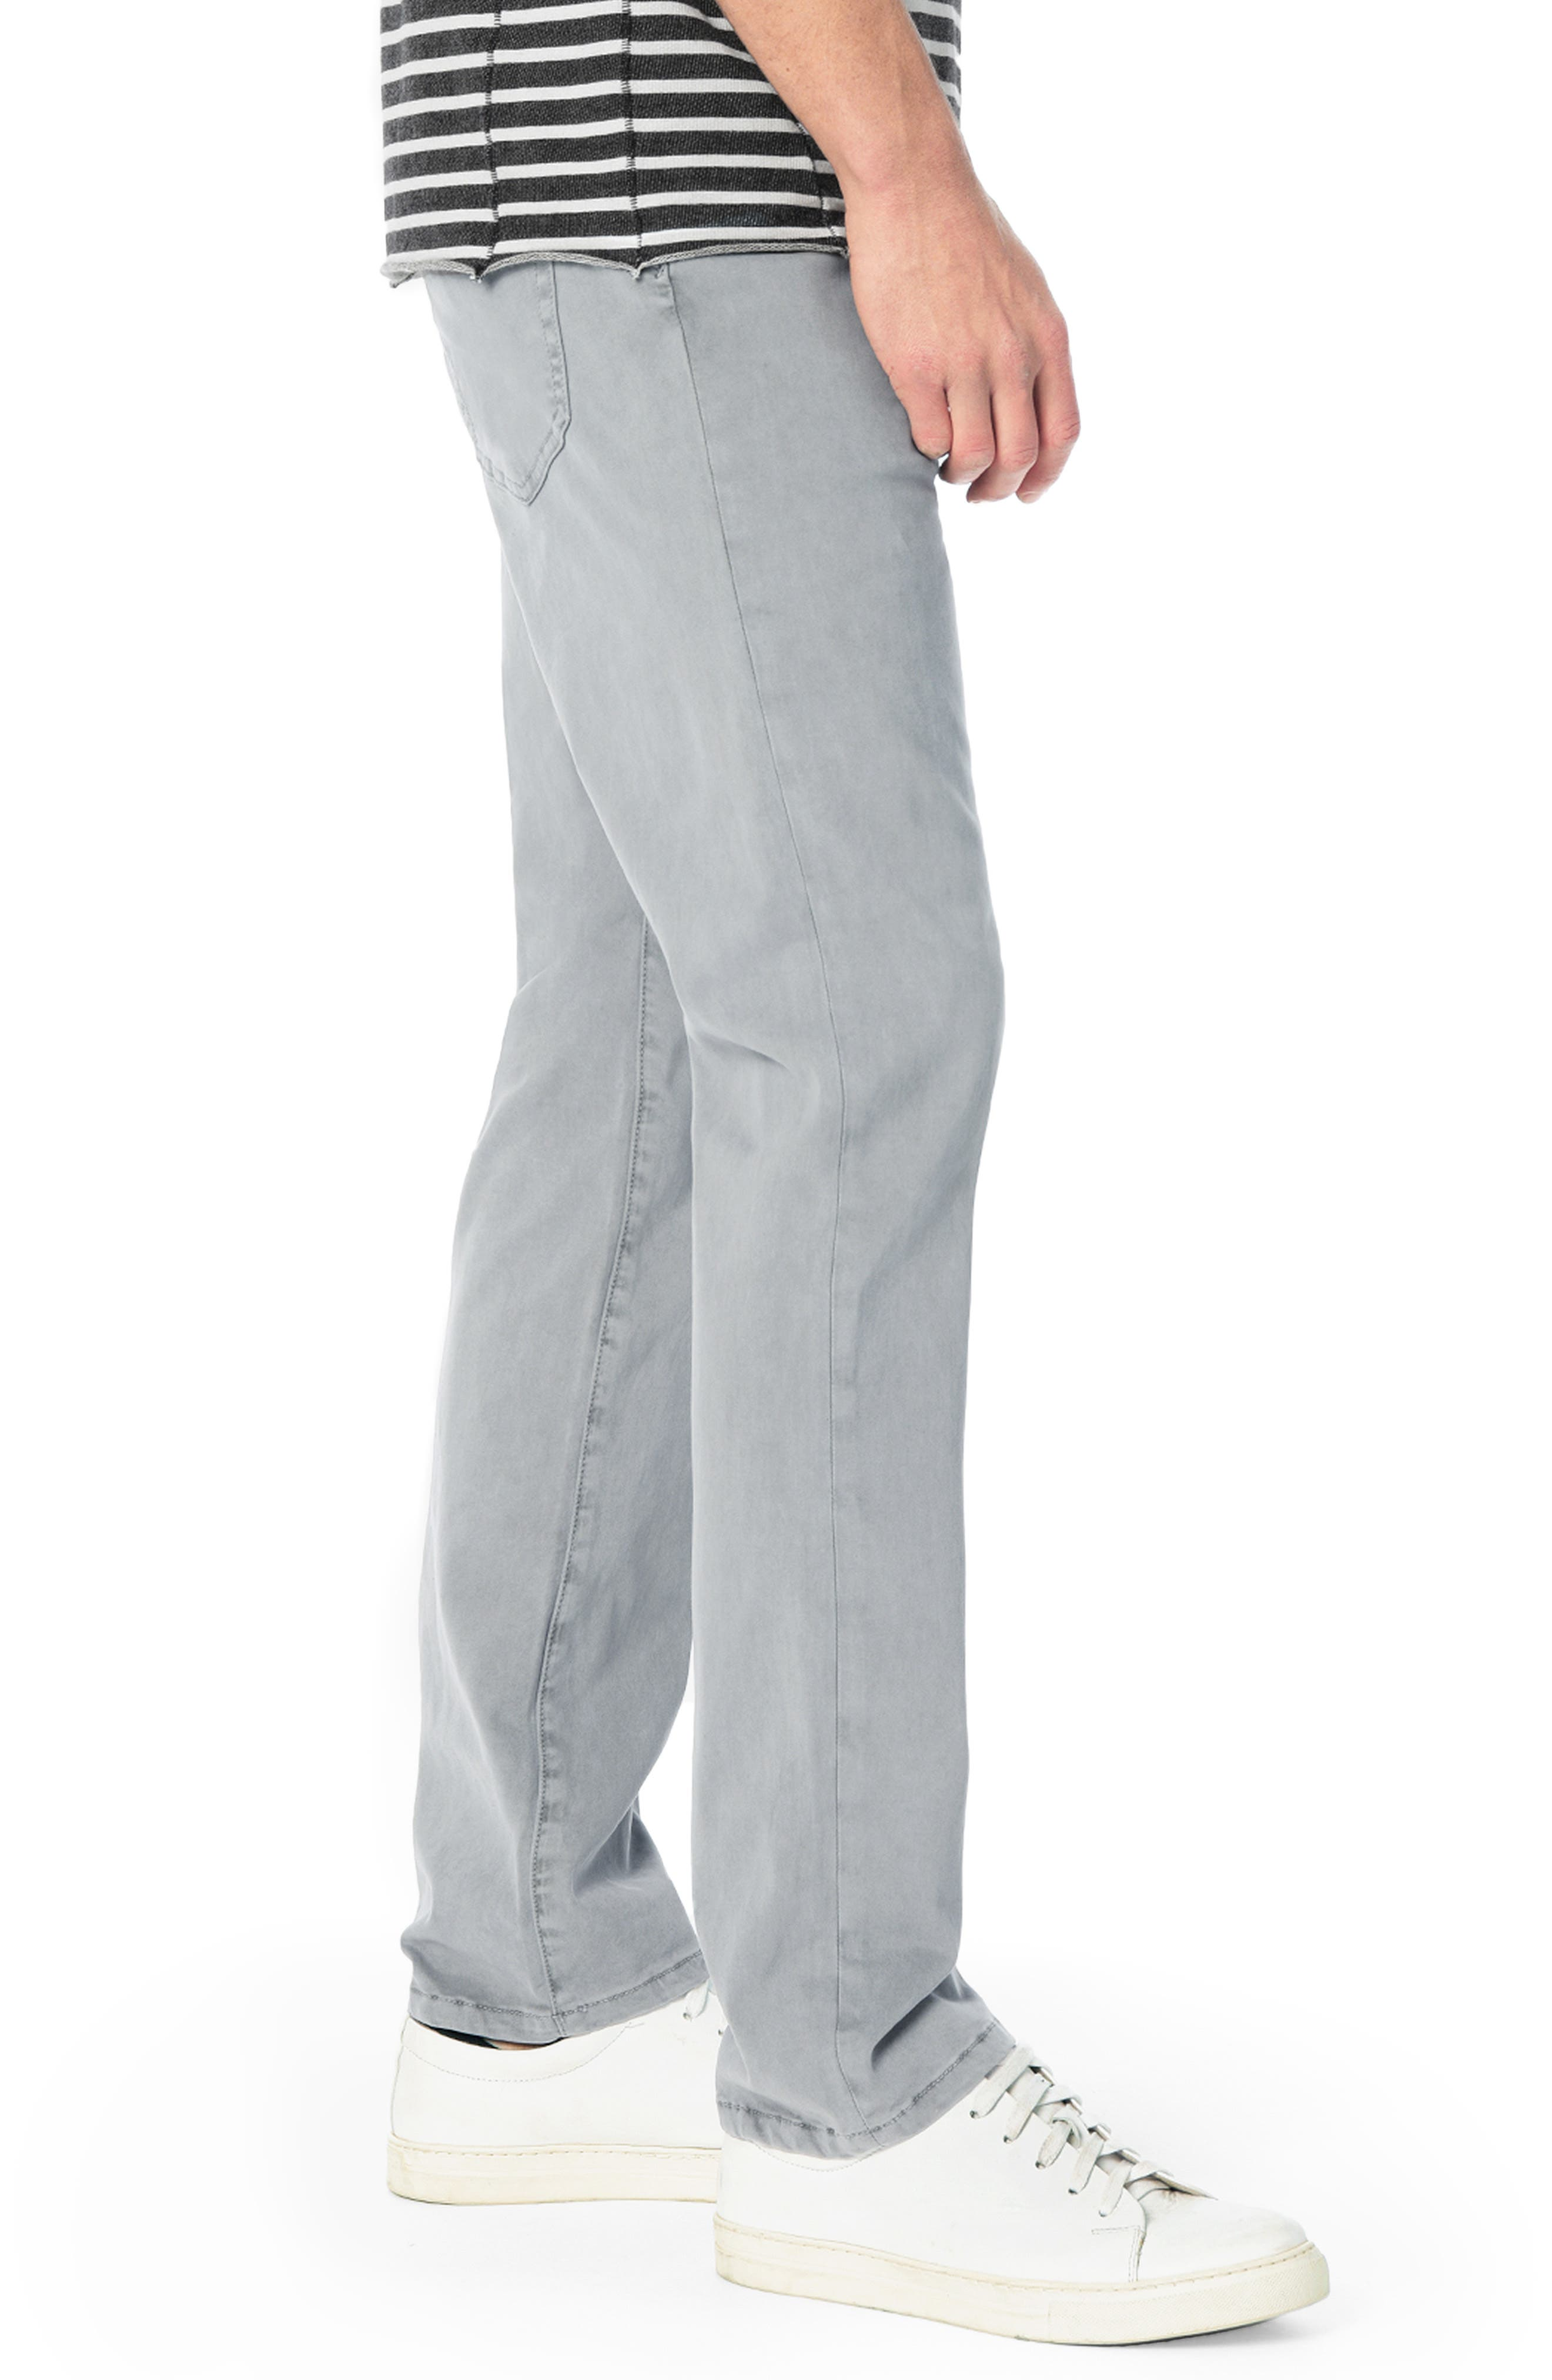 Brixton Slim Straight Chinos,                             Alternate thumbnail 3, color,                             FEATHER